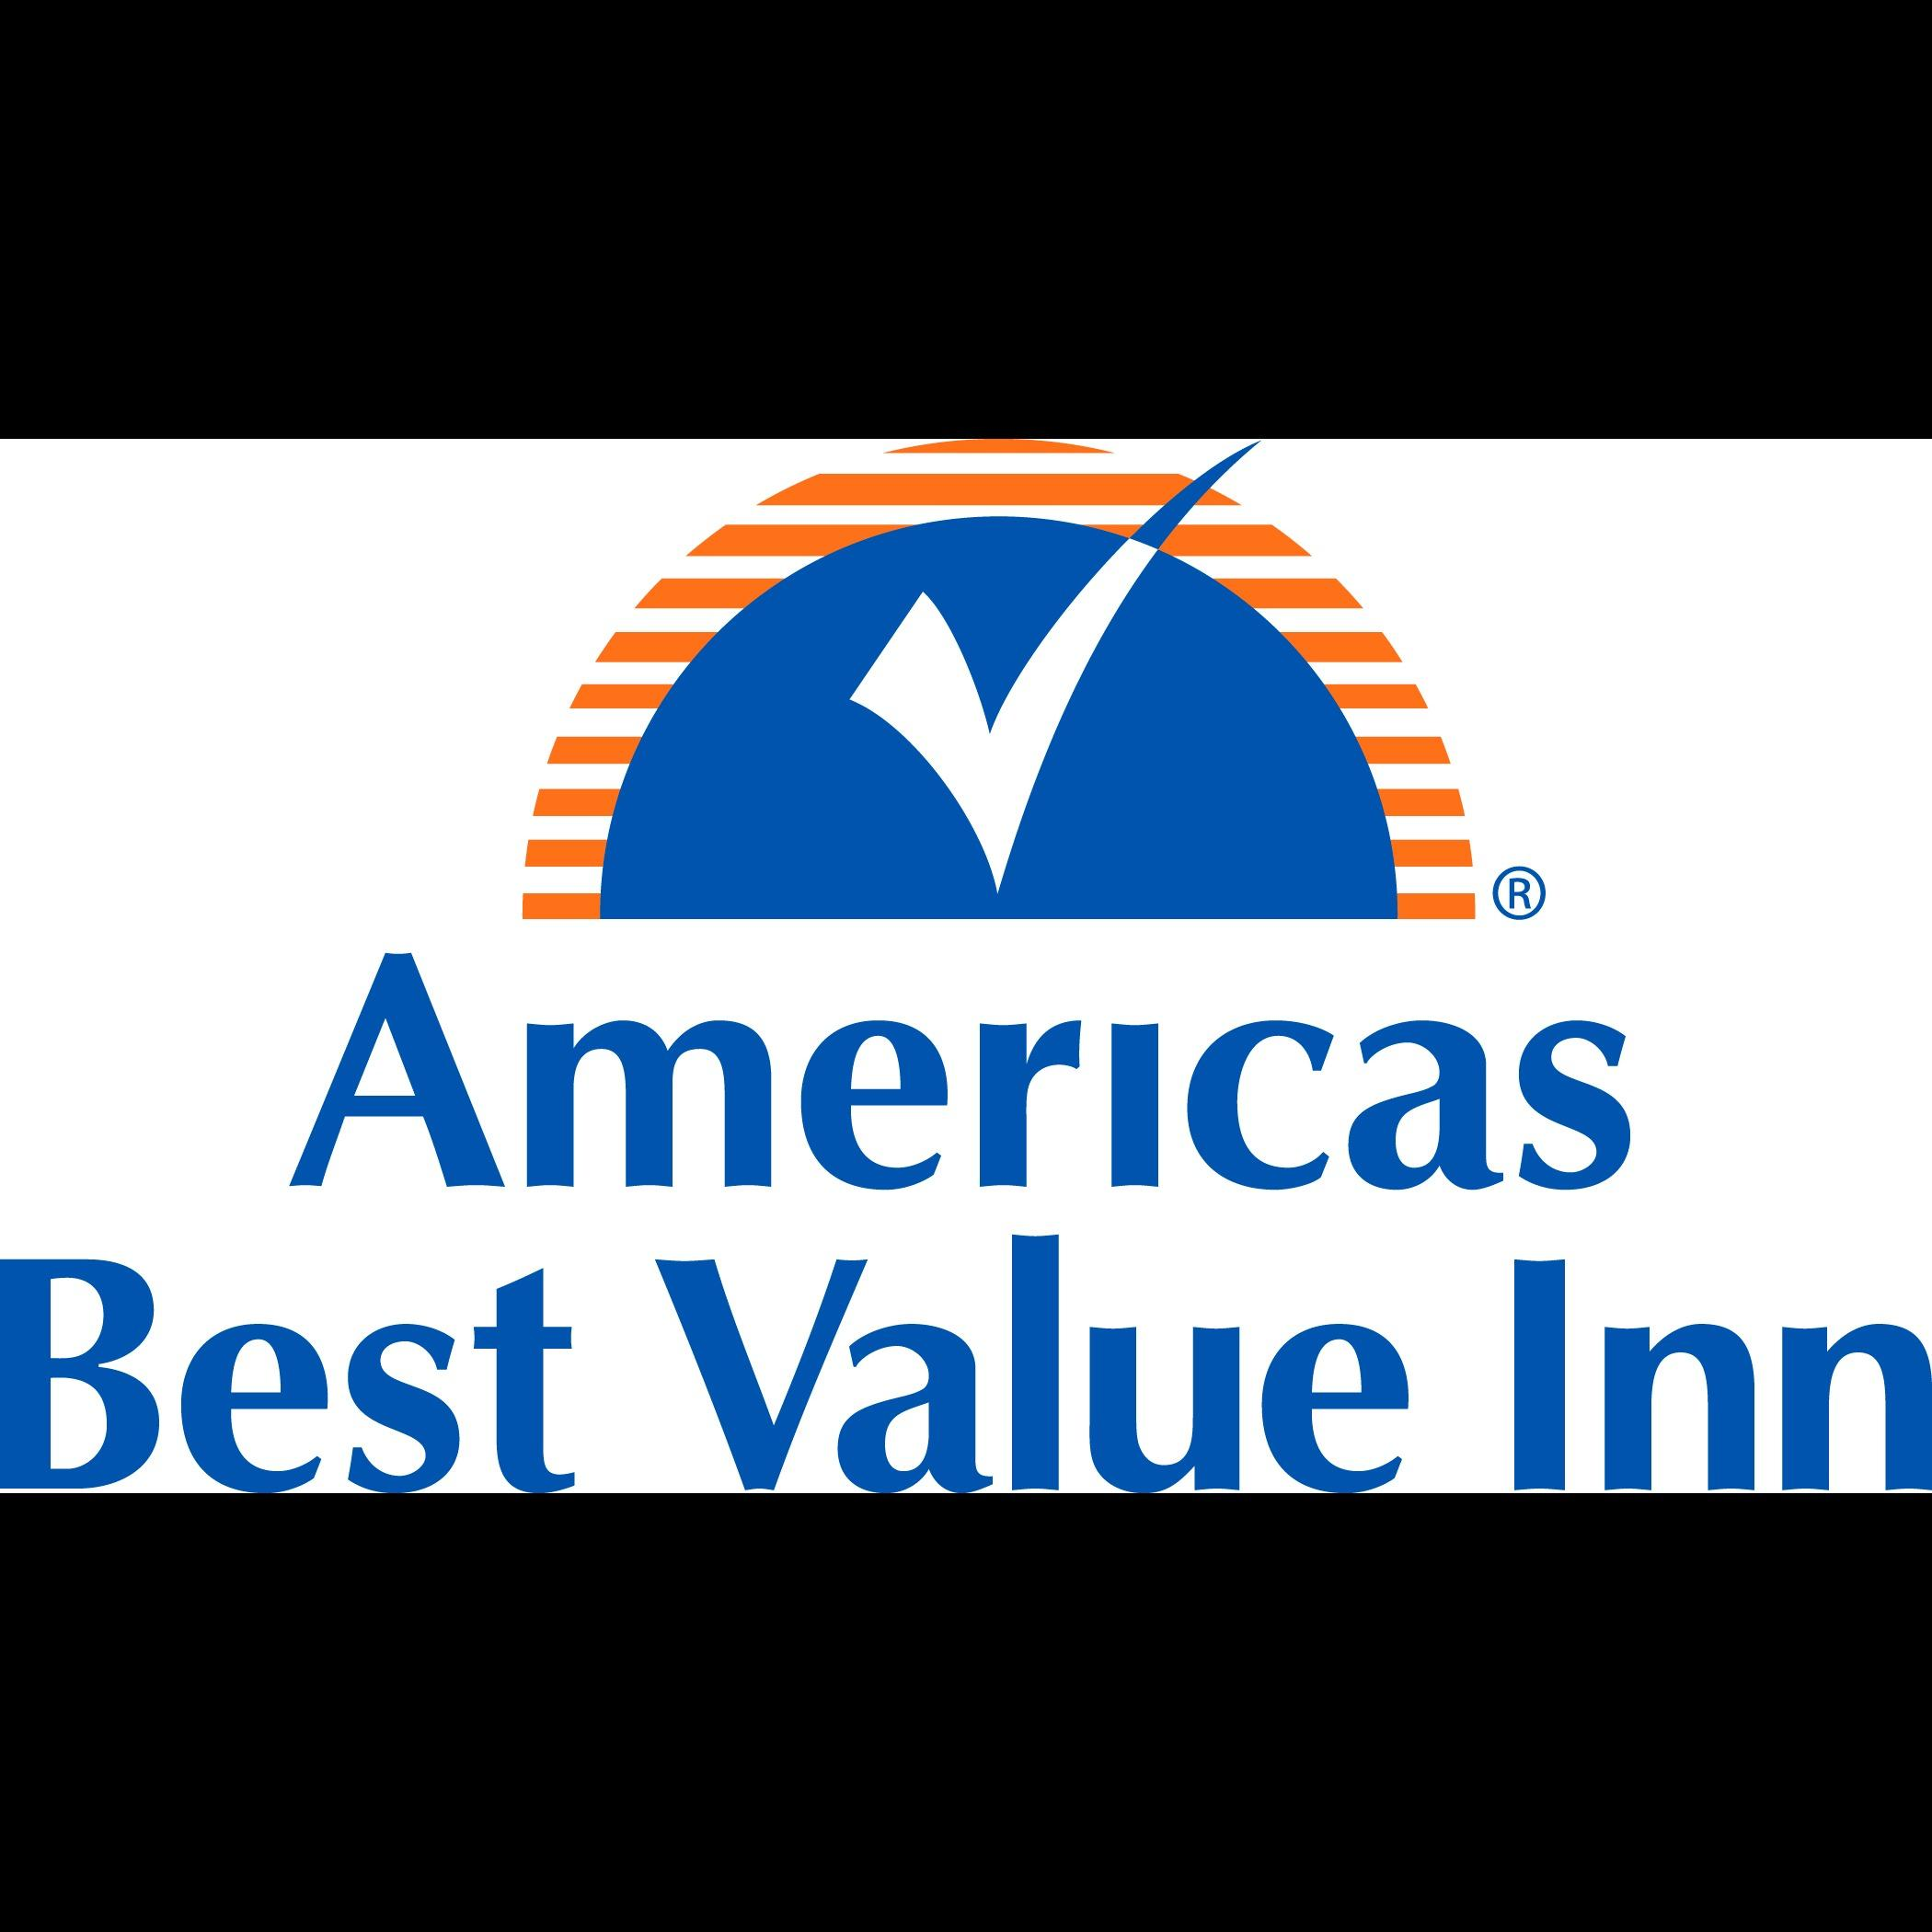 Americas Best Value Inn Sheridan - Sheridan, WY - Hotels & Motels